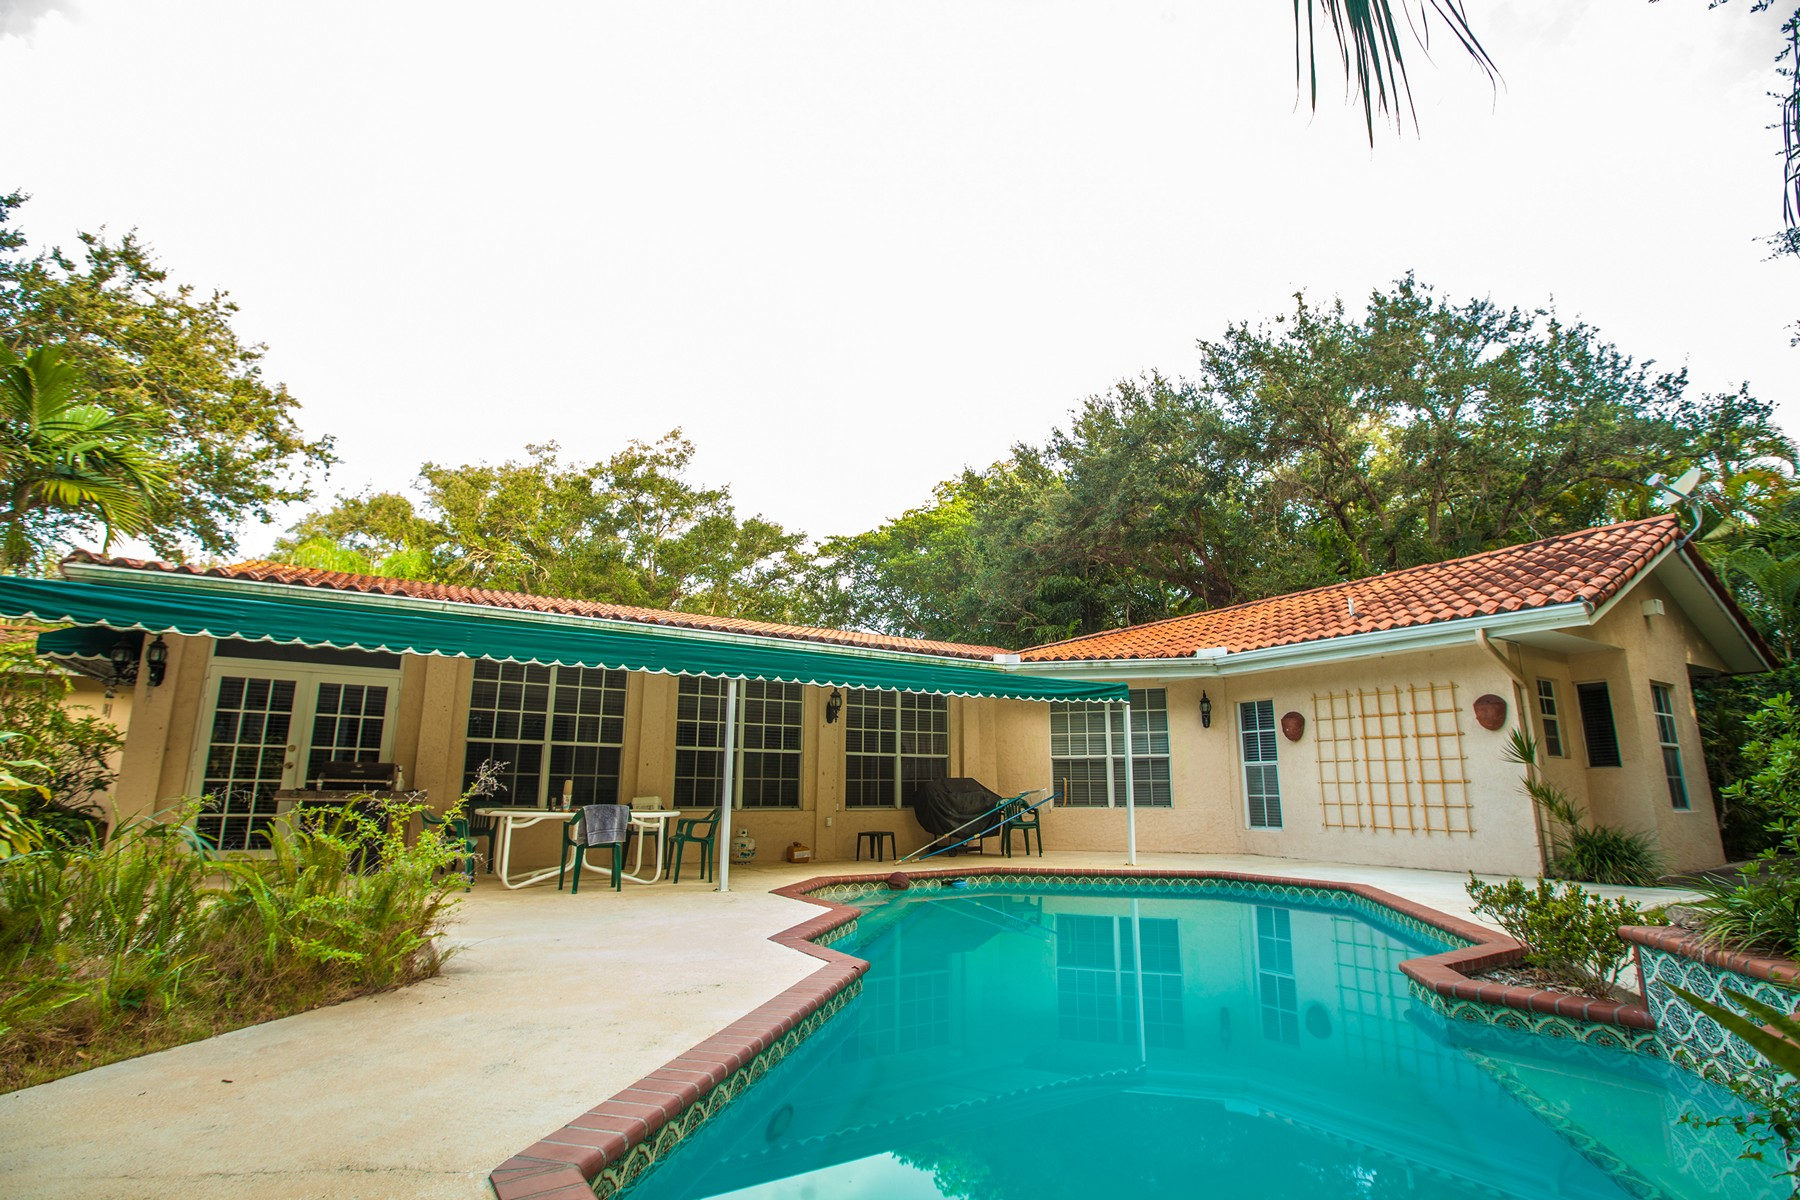 Single Family Home for Sale at 4991 SW 86 St Miami, Florida 33143 United States